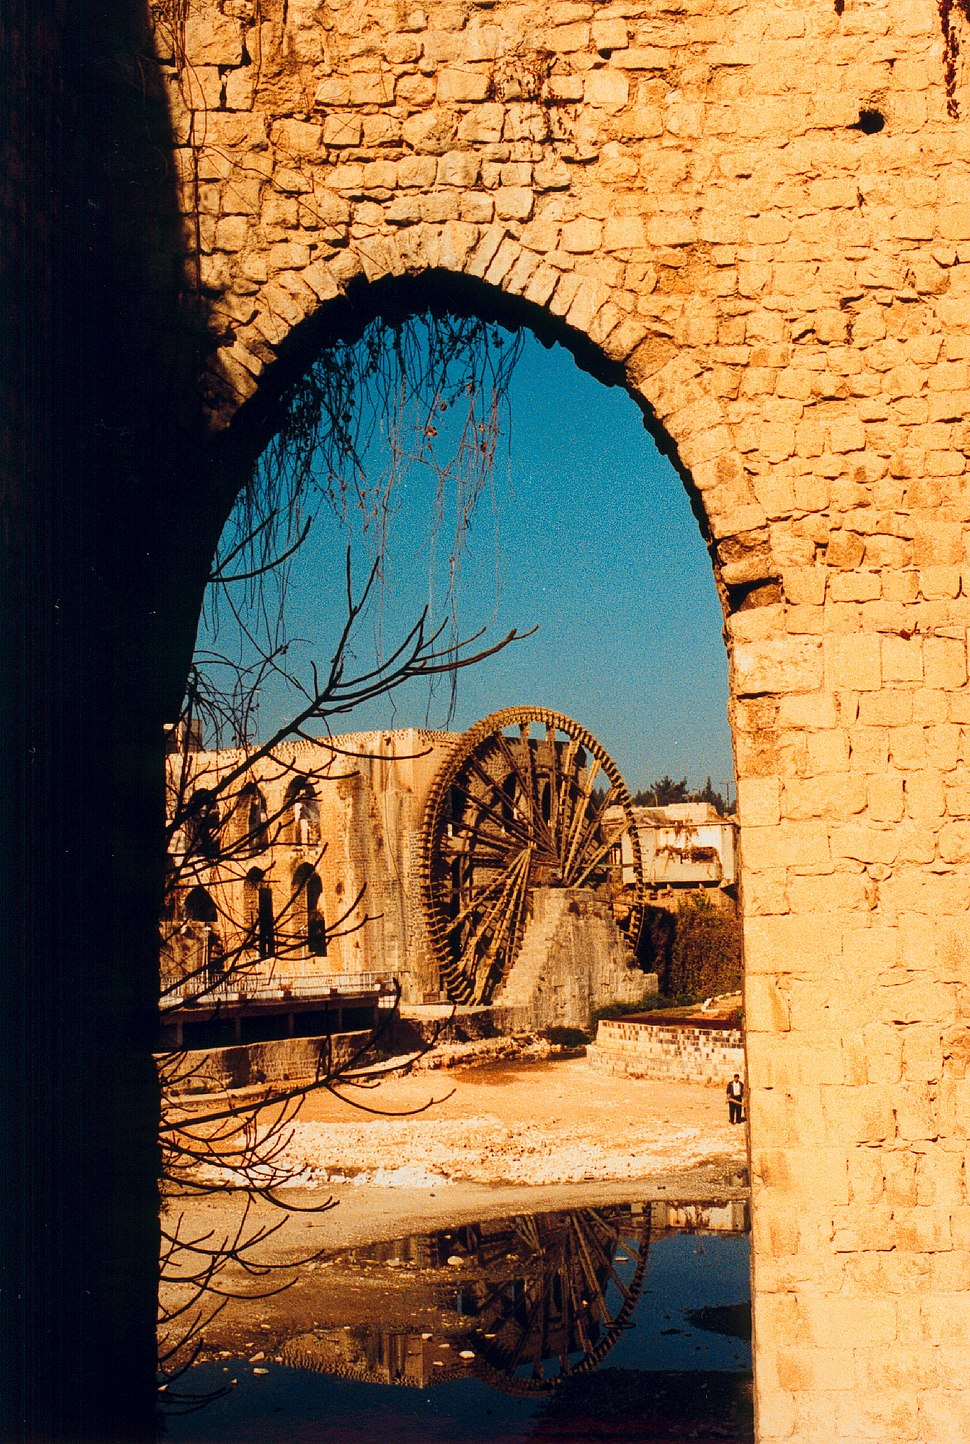 Water Wheel of Hama